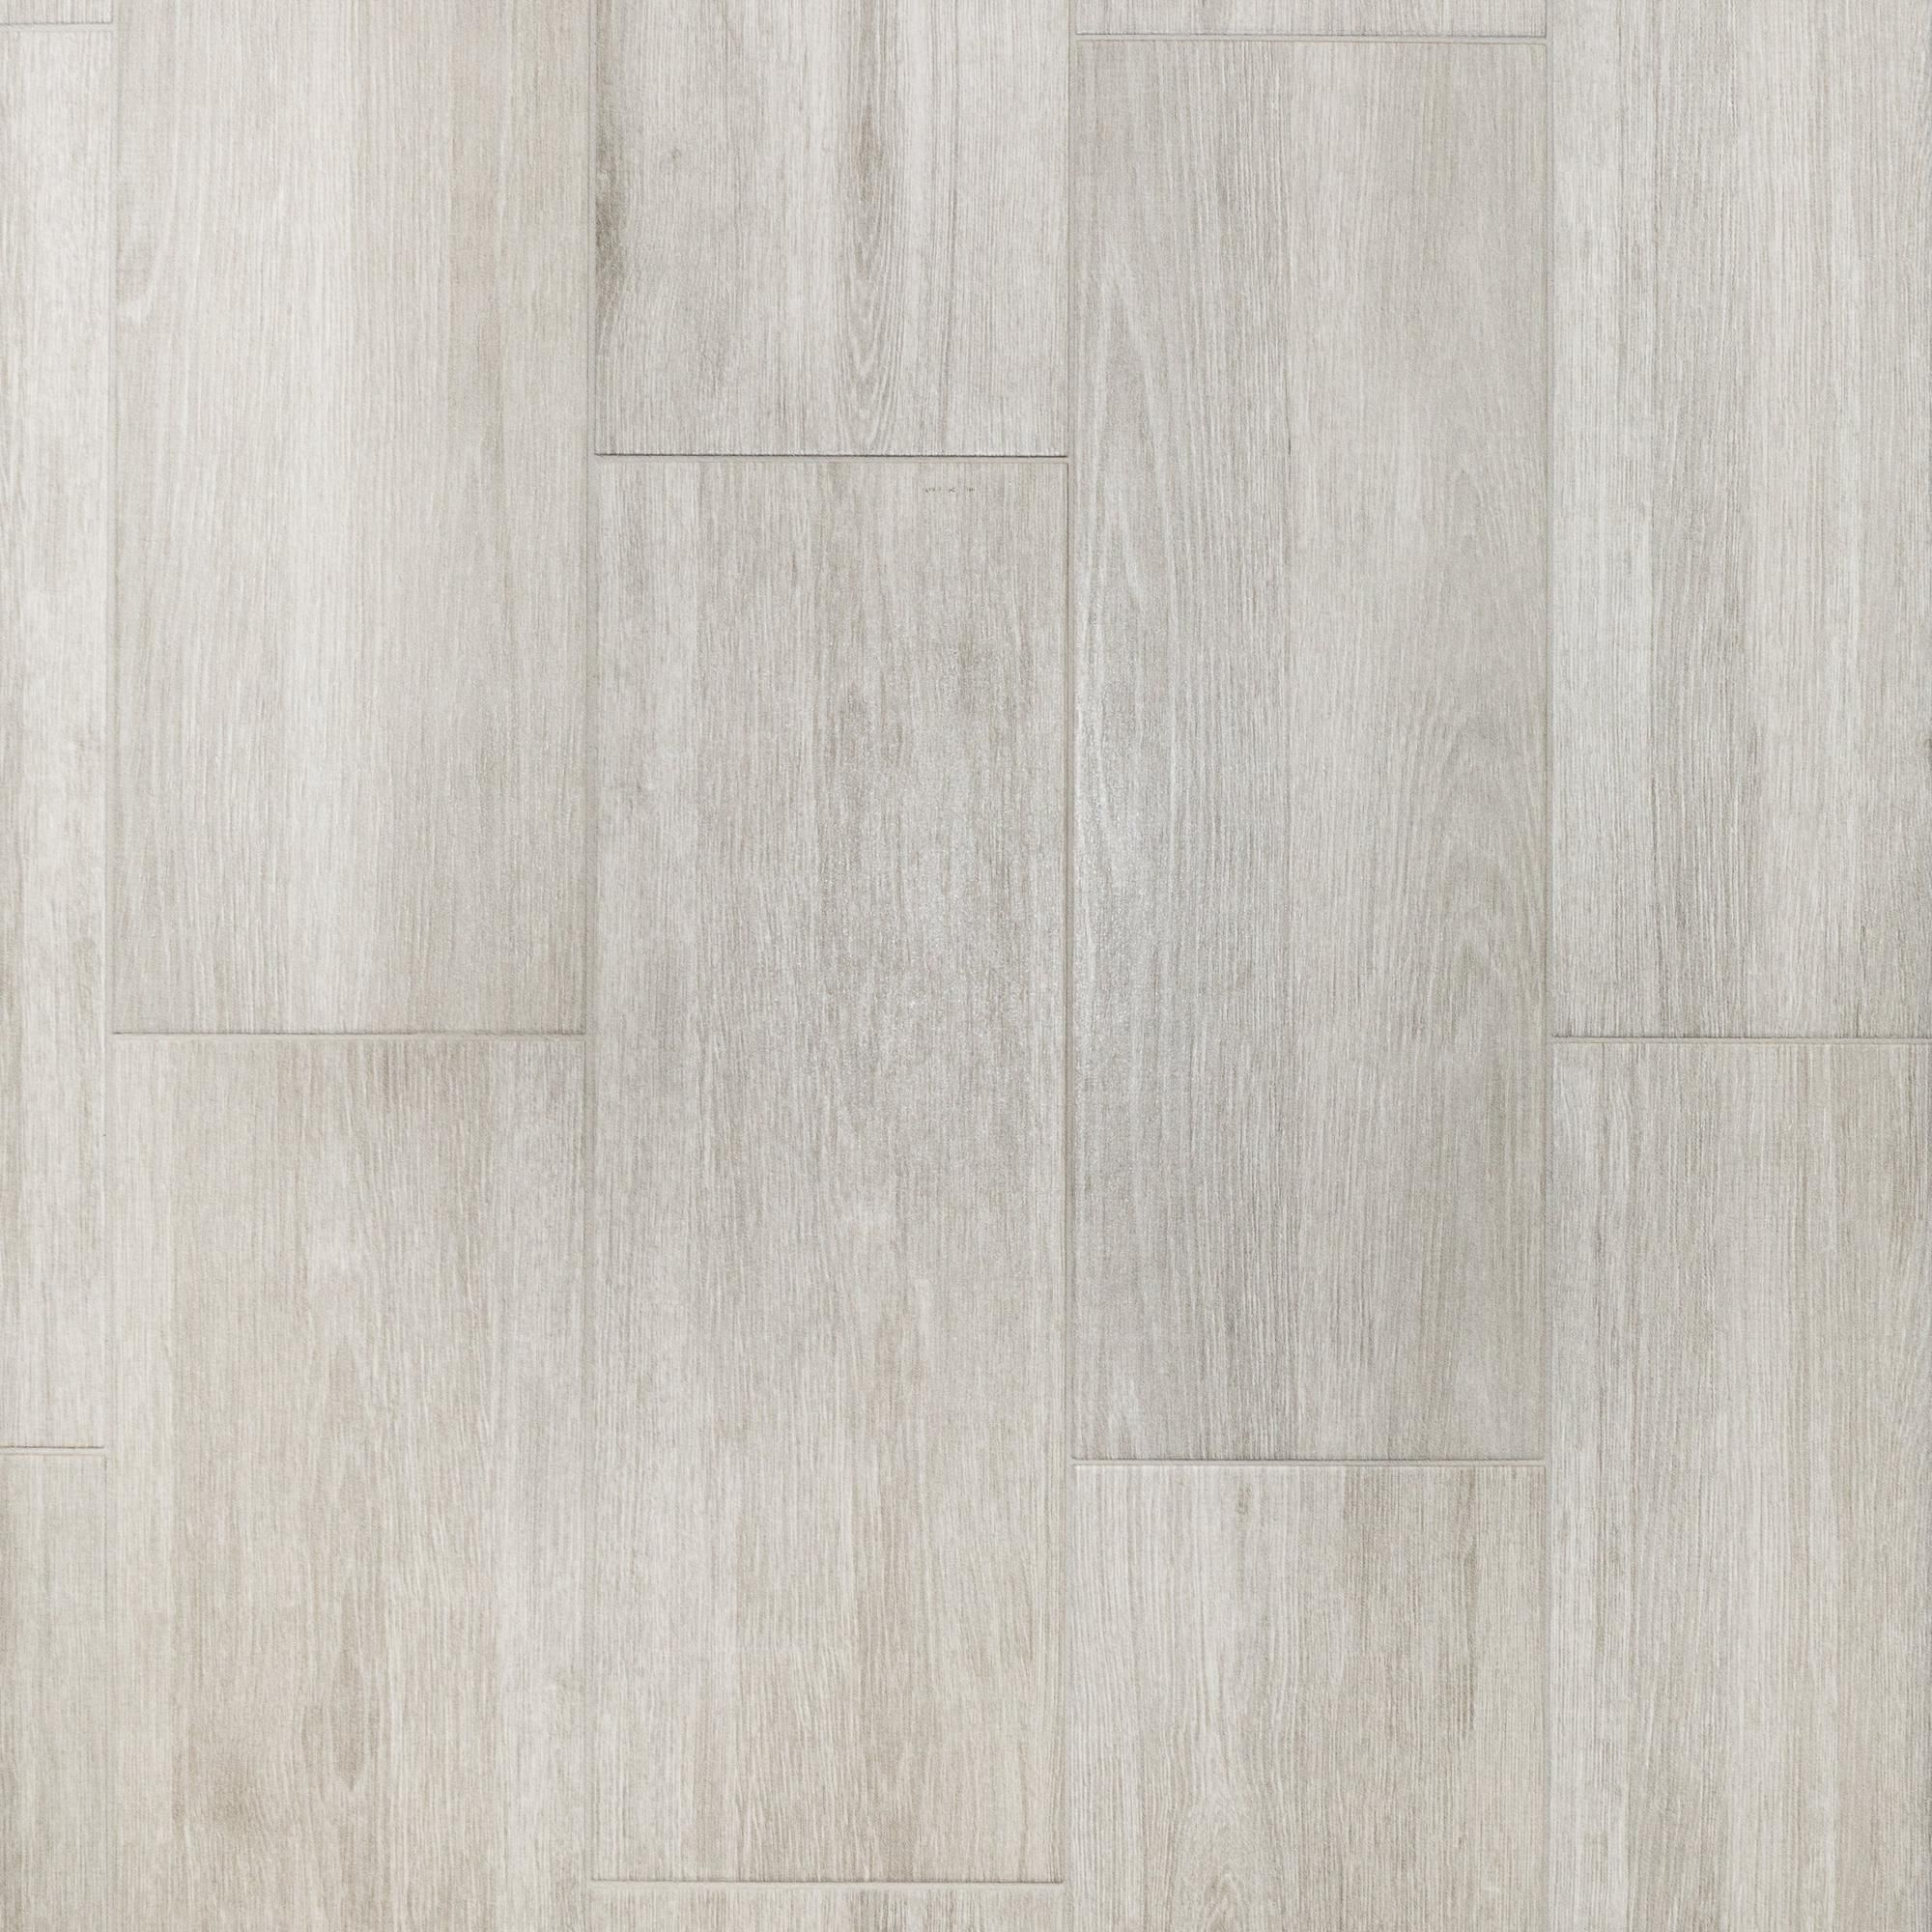 Ronne Gris Wood Plank Ceramic Tile With Images Wood Plank Tile